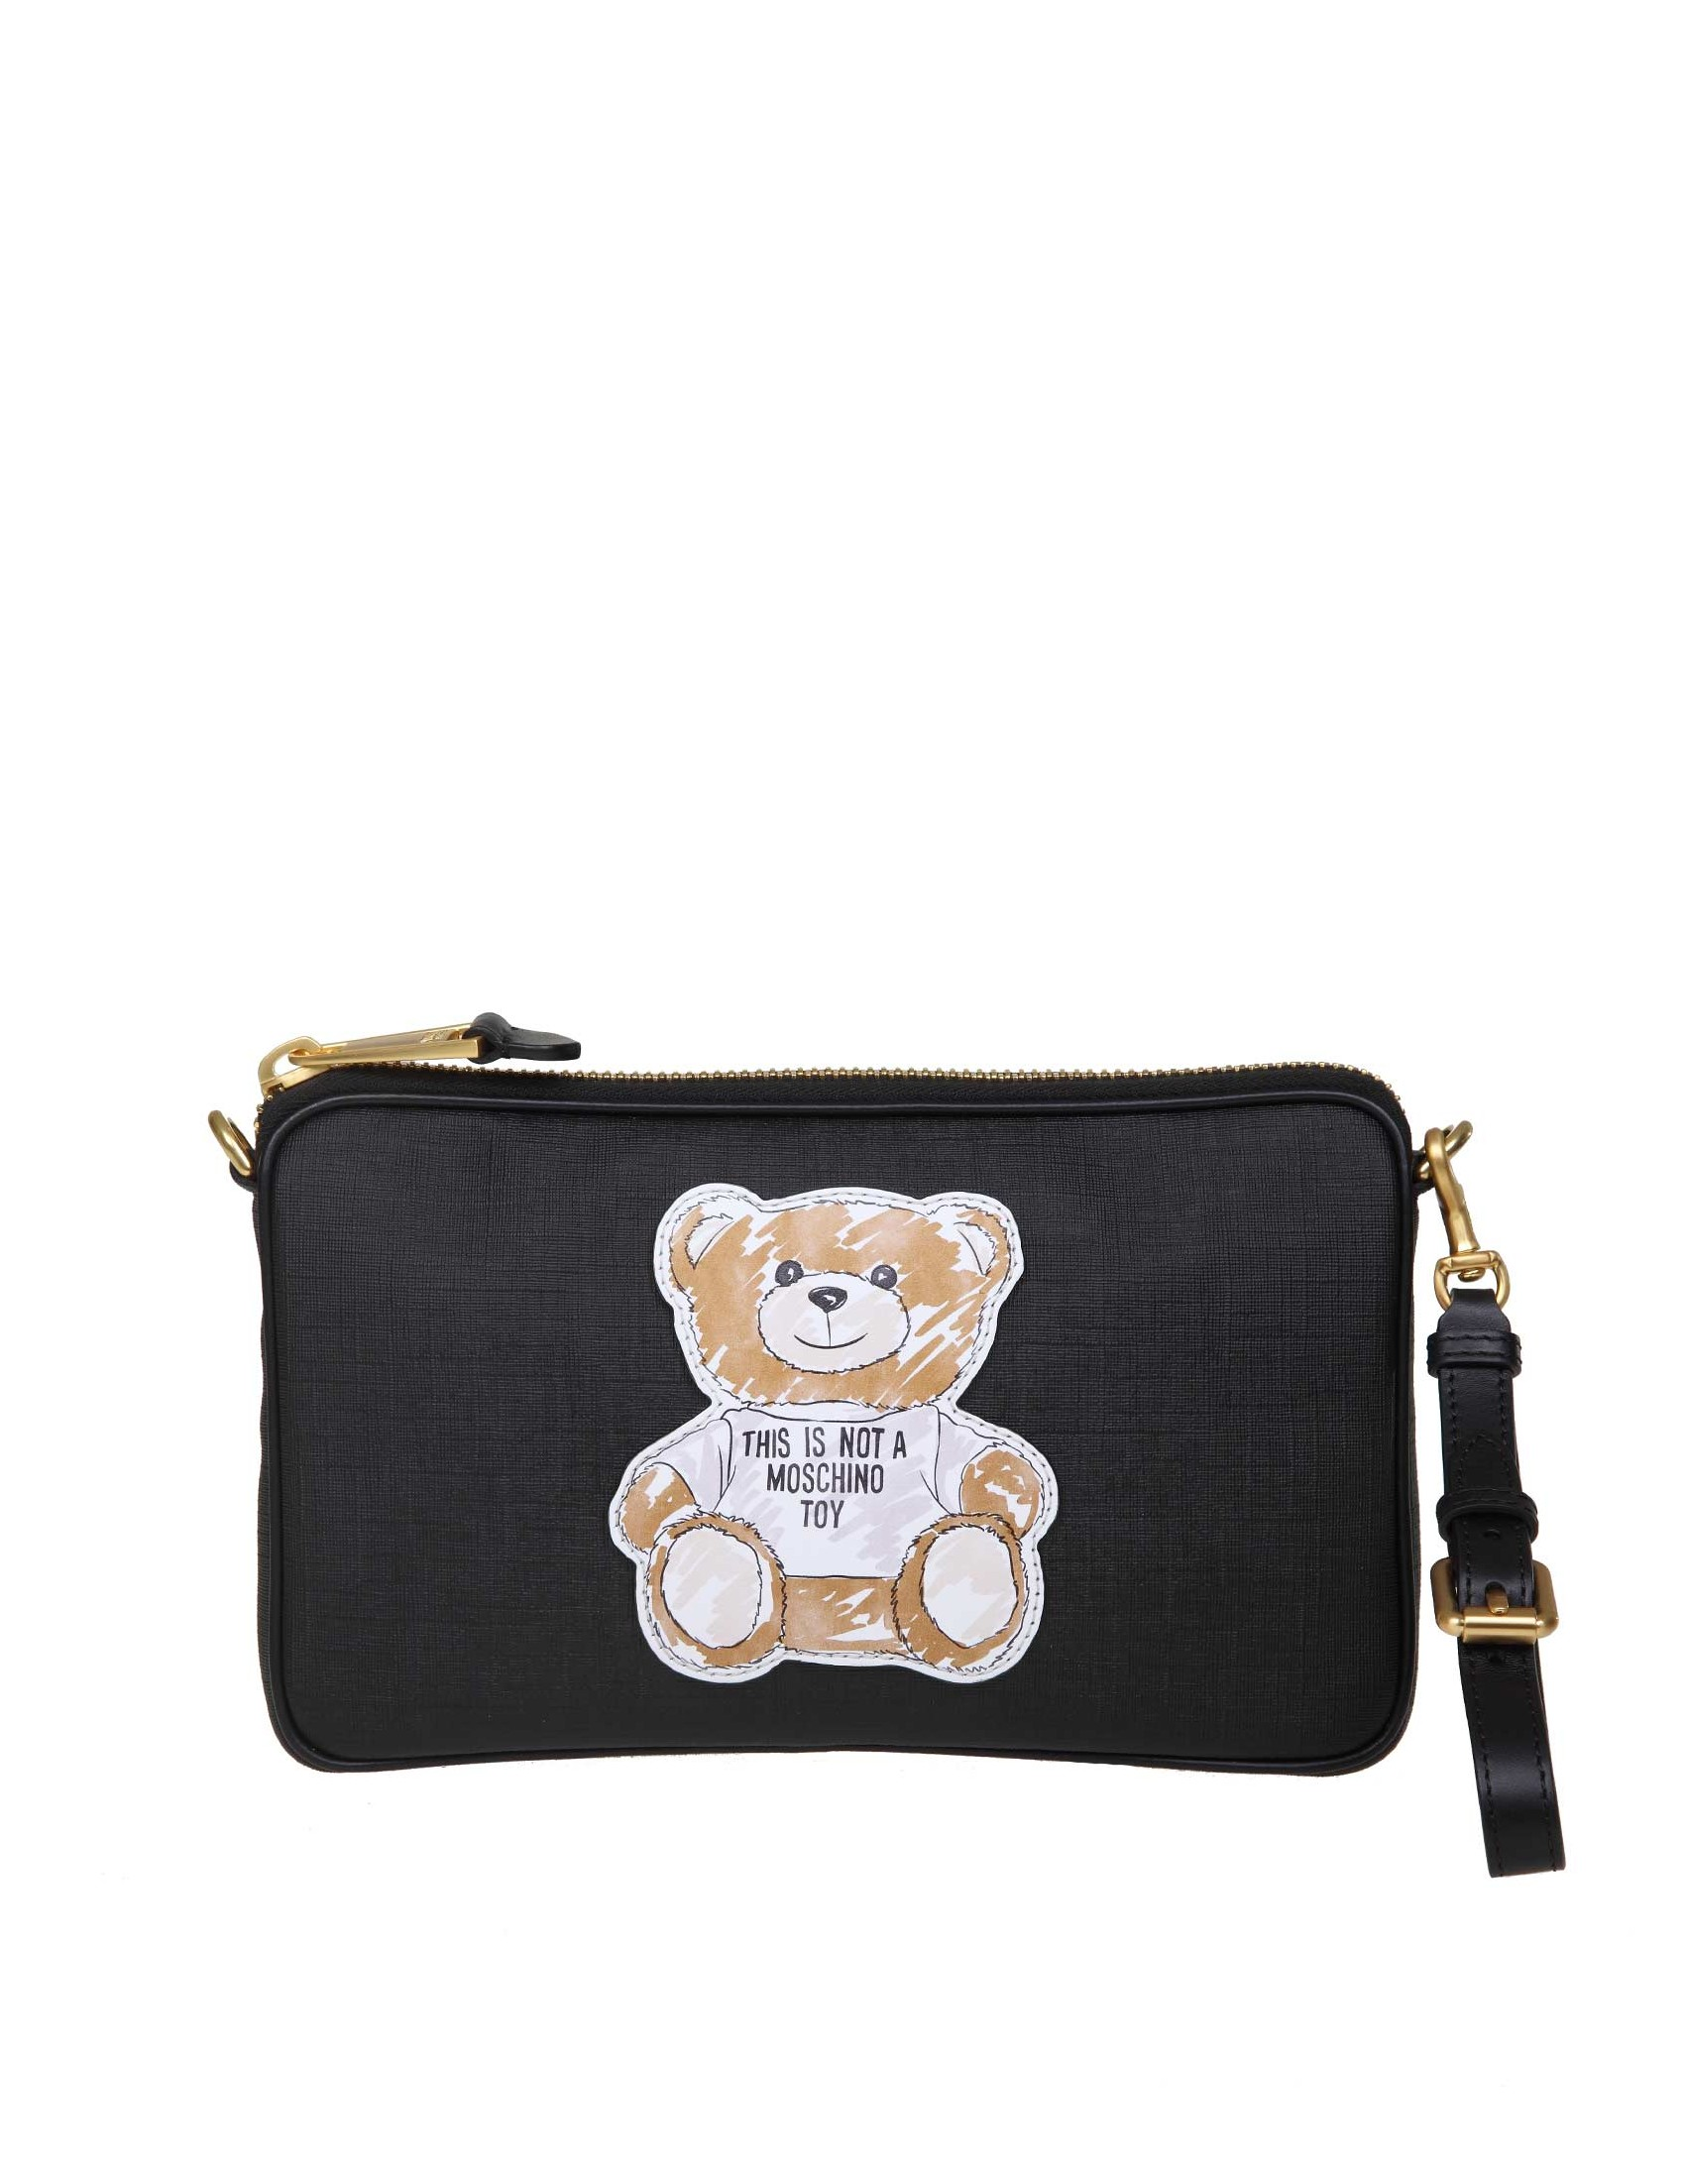 4f3c4f043e Textured faux leather shoulder strap. Black colour. Embossed Teddy print on  the front. Embossed leather logo on the back. Zip closure